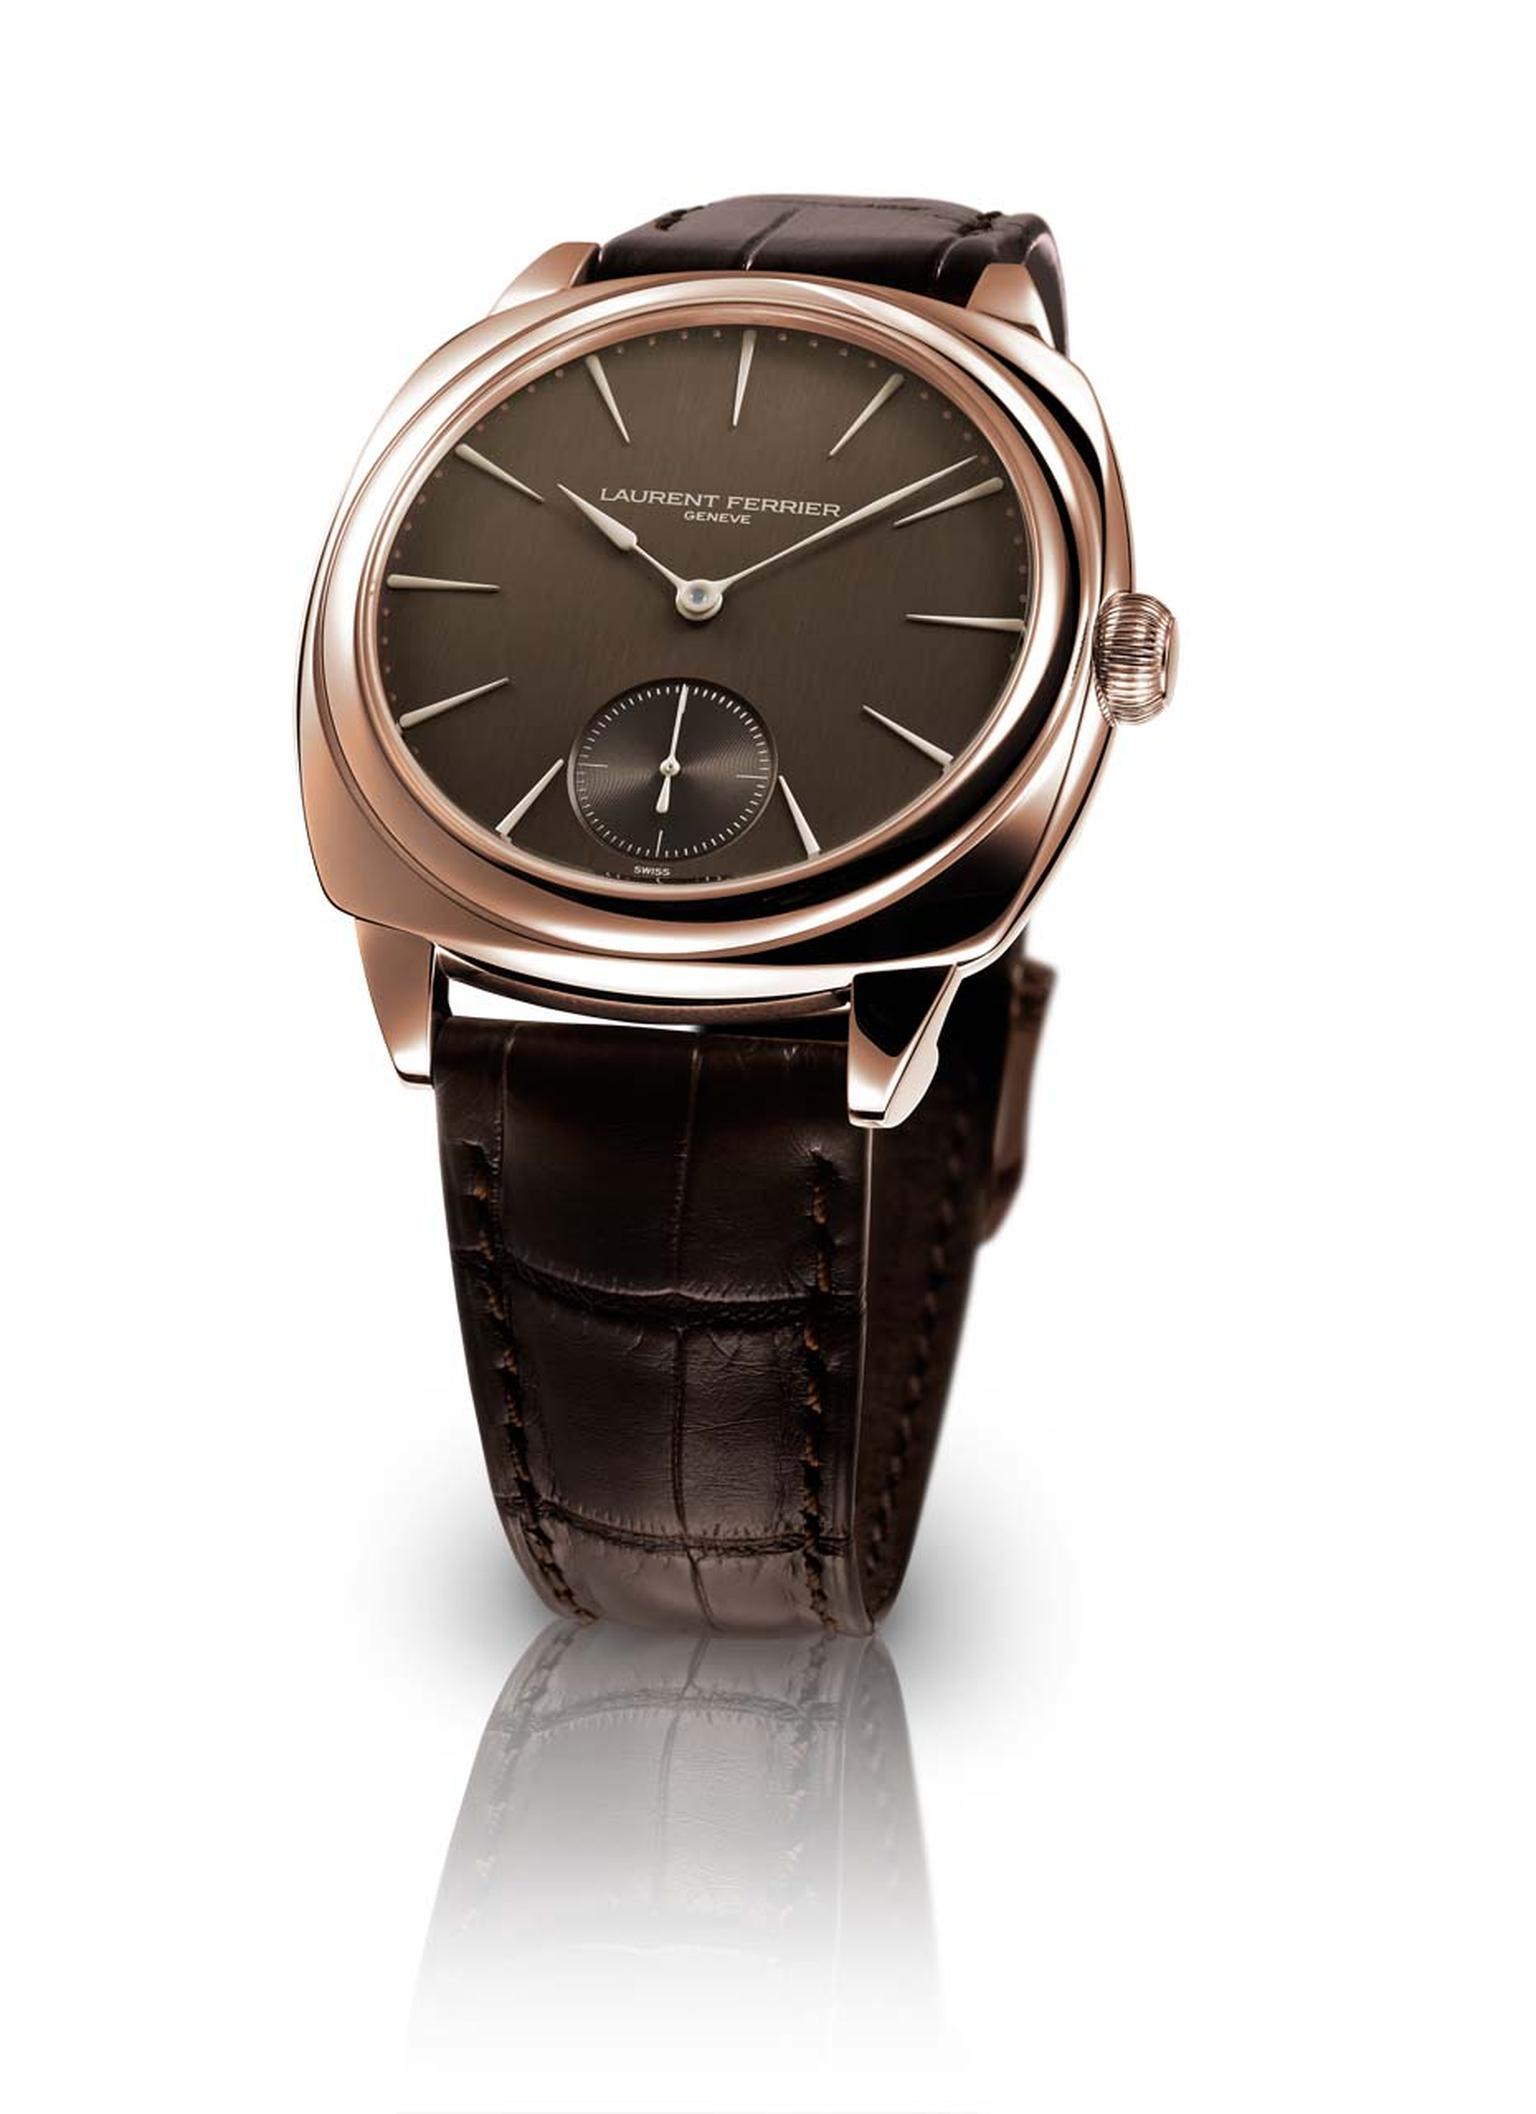 The Laurent Ferrier Galet Square Chocolate 41mm rose gold watch features a satin-brushed, chocolate-coloured dial with hours, minutes and small seconds functions. Inside the case is one of Ferrier's distinctive movements with an off-centred micro-rotor pr